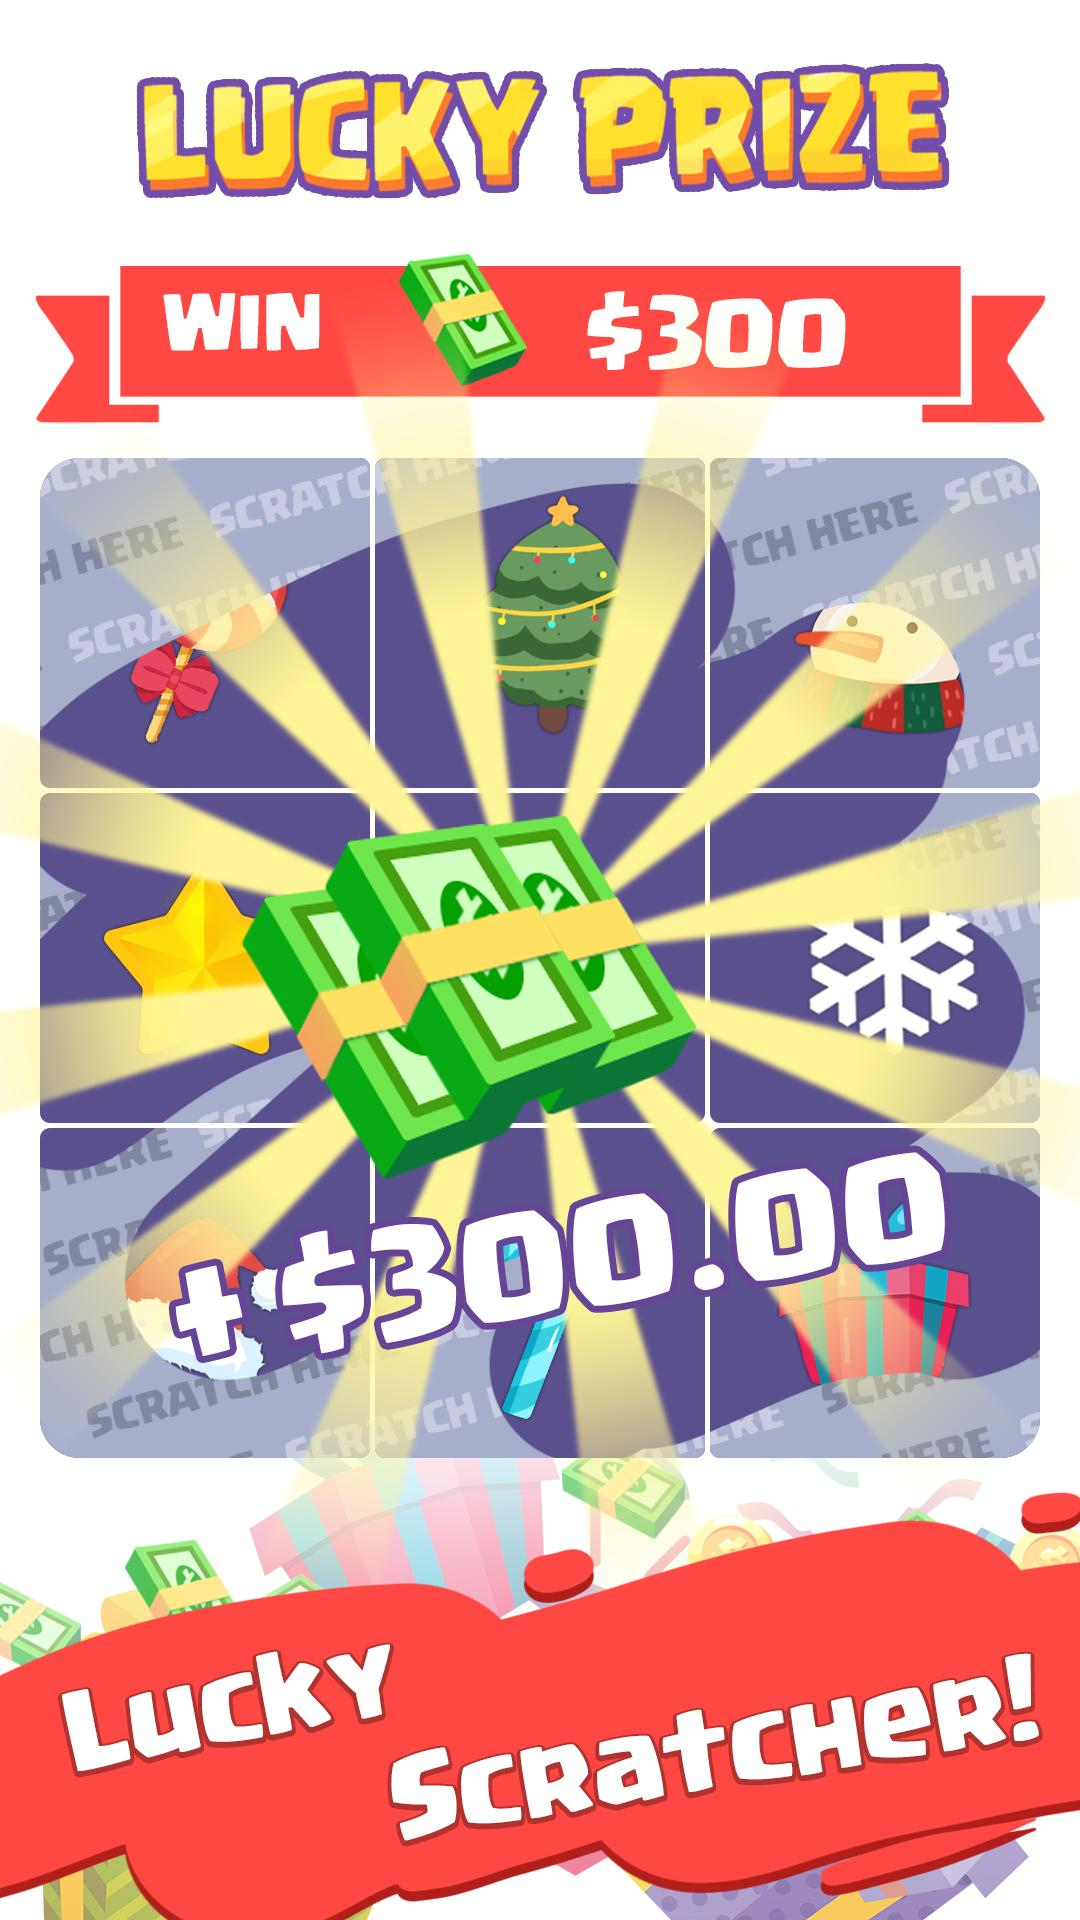 Lucky Prize Win Real Money And Gift Cards For Android Apk Download